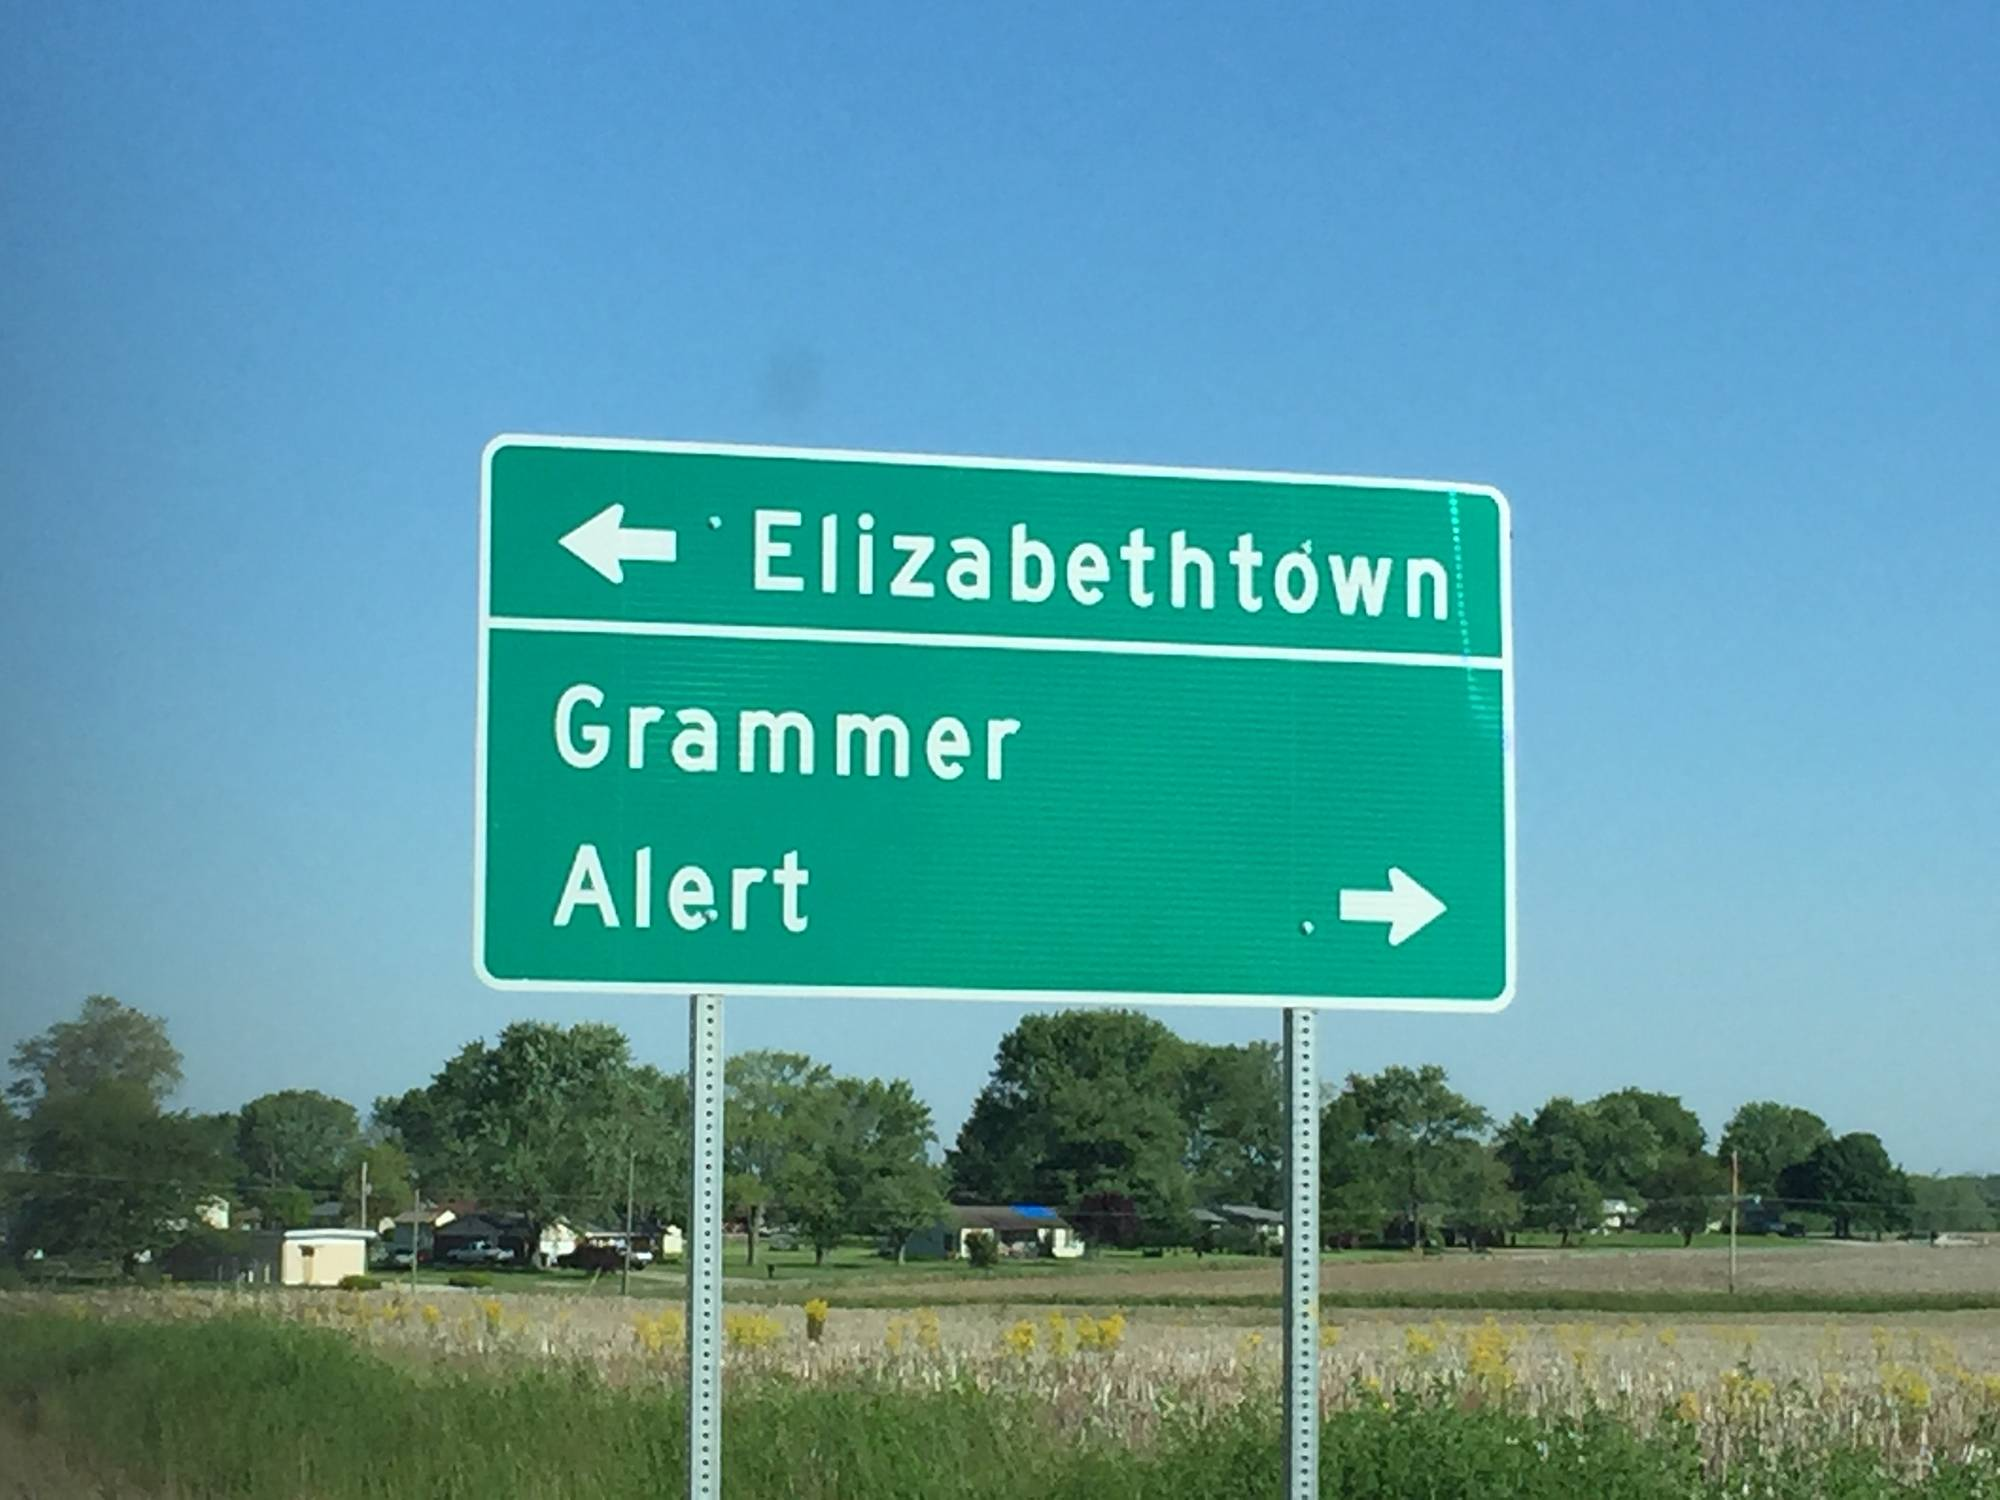 Grammer and Alert are two rural communities in southern Indiana.